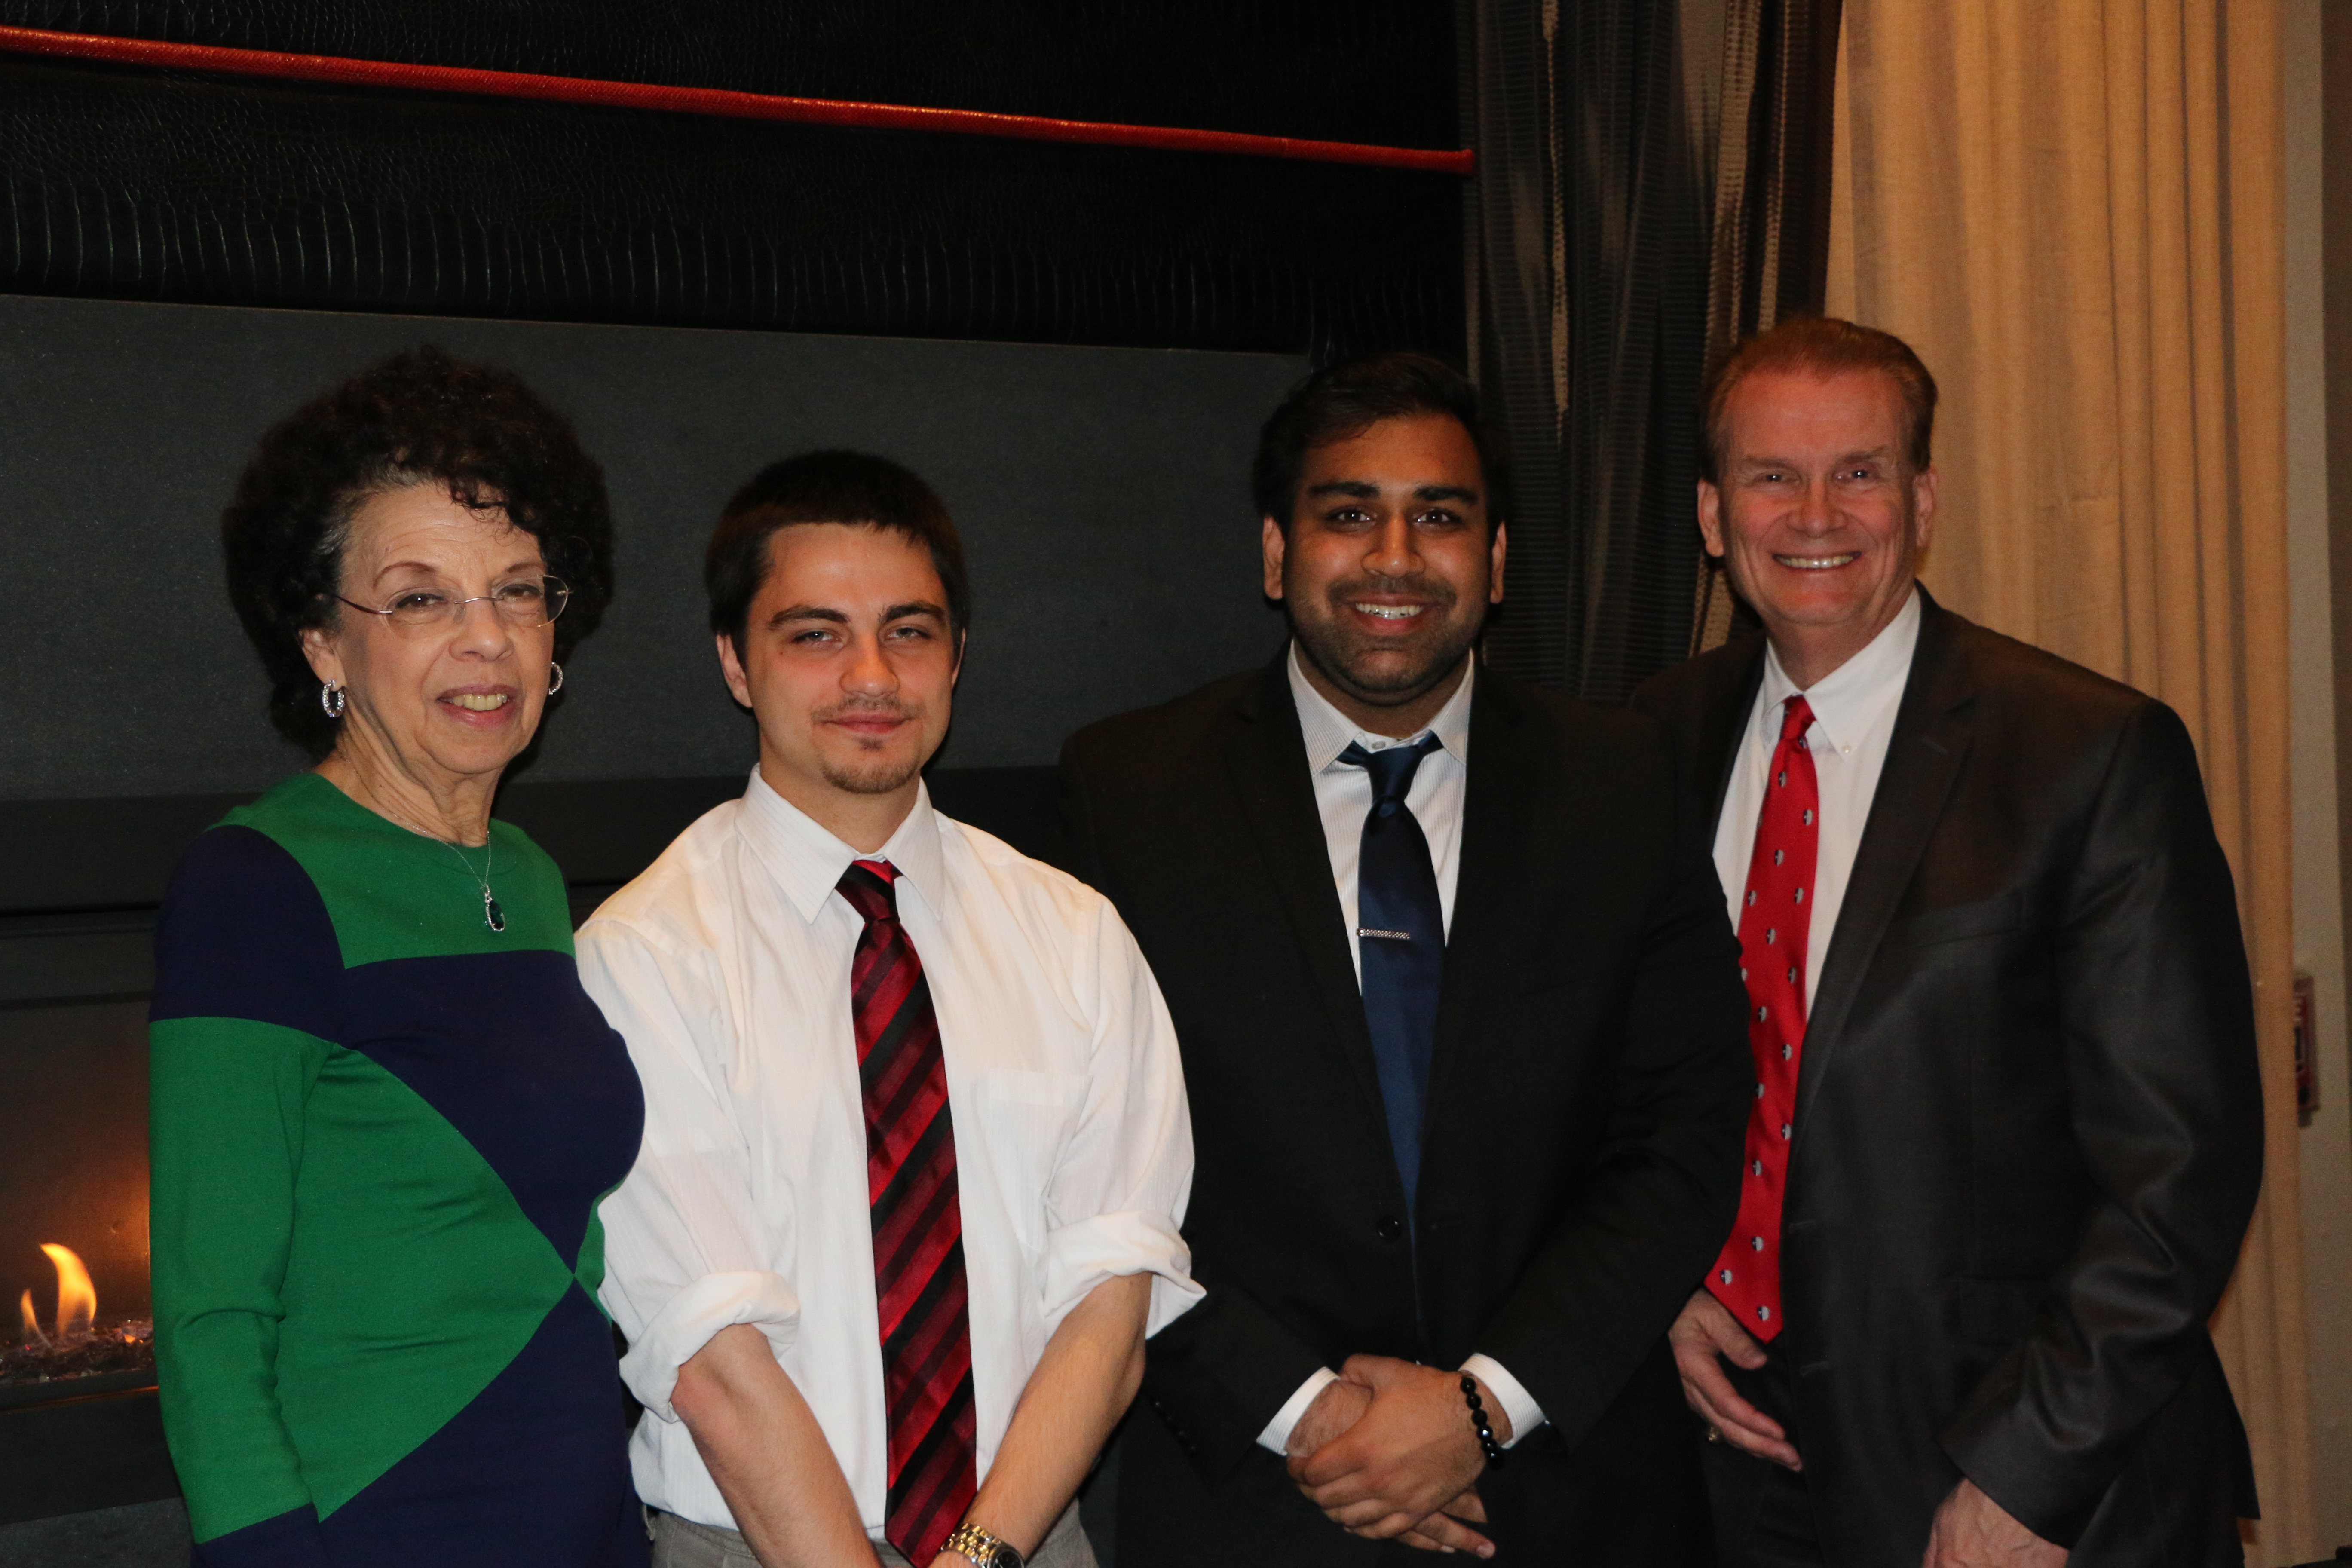 Gregory Poterwicz '16 (center left) and Ravi Patel '16 (center right) pose with Gloria Snyder '72, chair of the Past Presidents Council, and Bob Stafford '72, '82, president of the Stony Brook University Alumni Association, during a dinner reception on April 5 honoring the first three recipients of of the University's Alumni Association Past Presidents Scholarship.